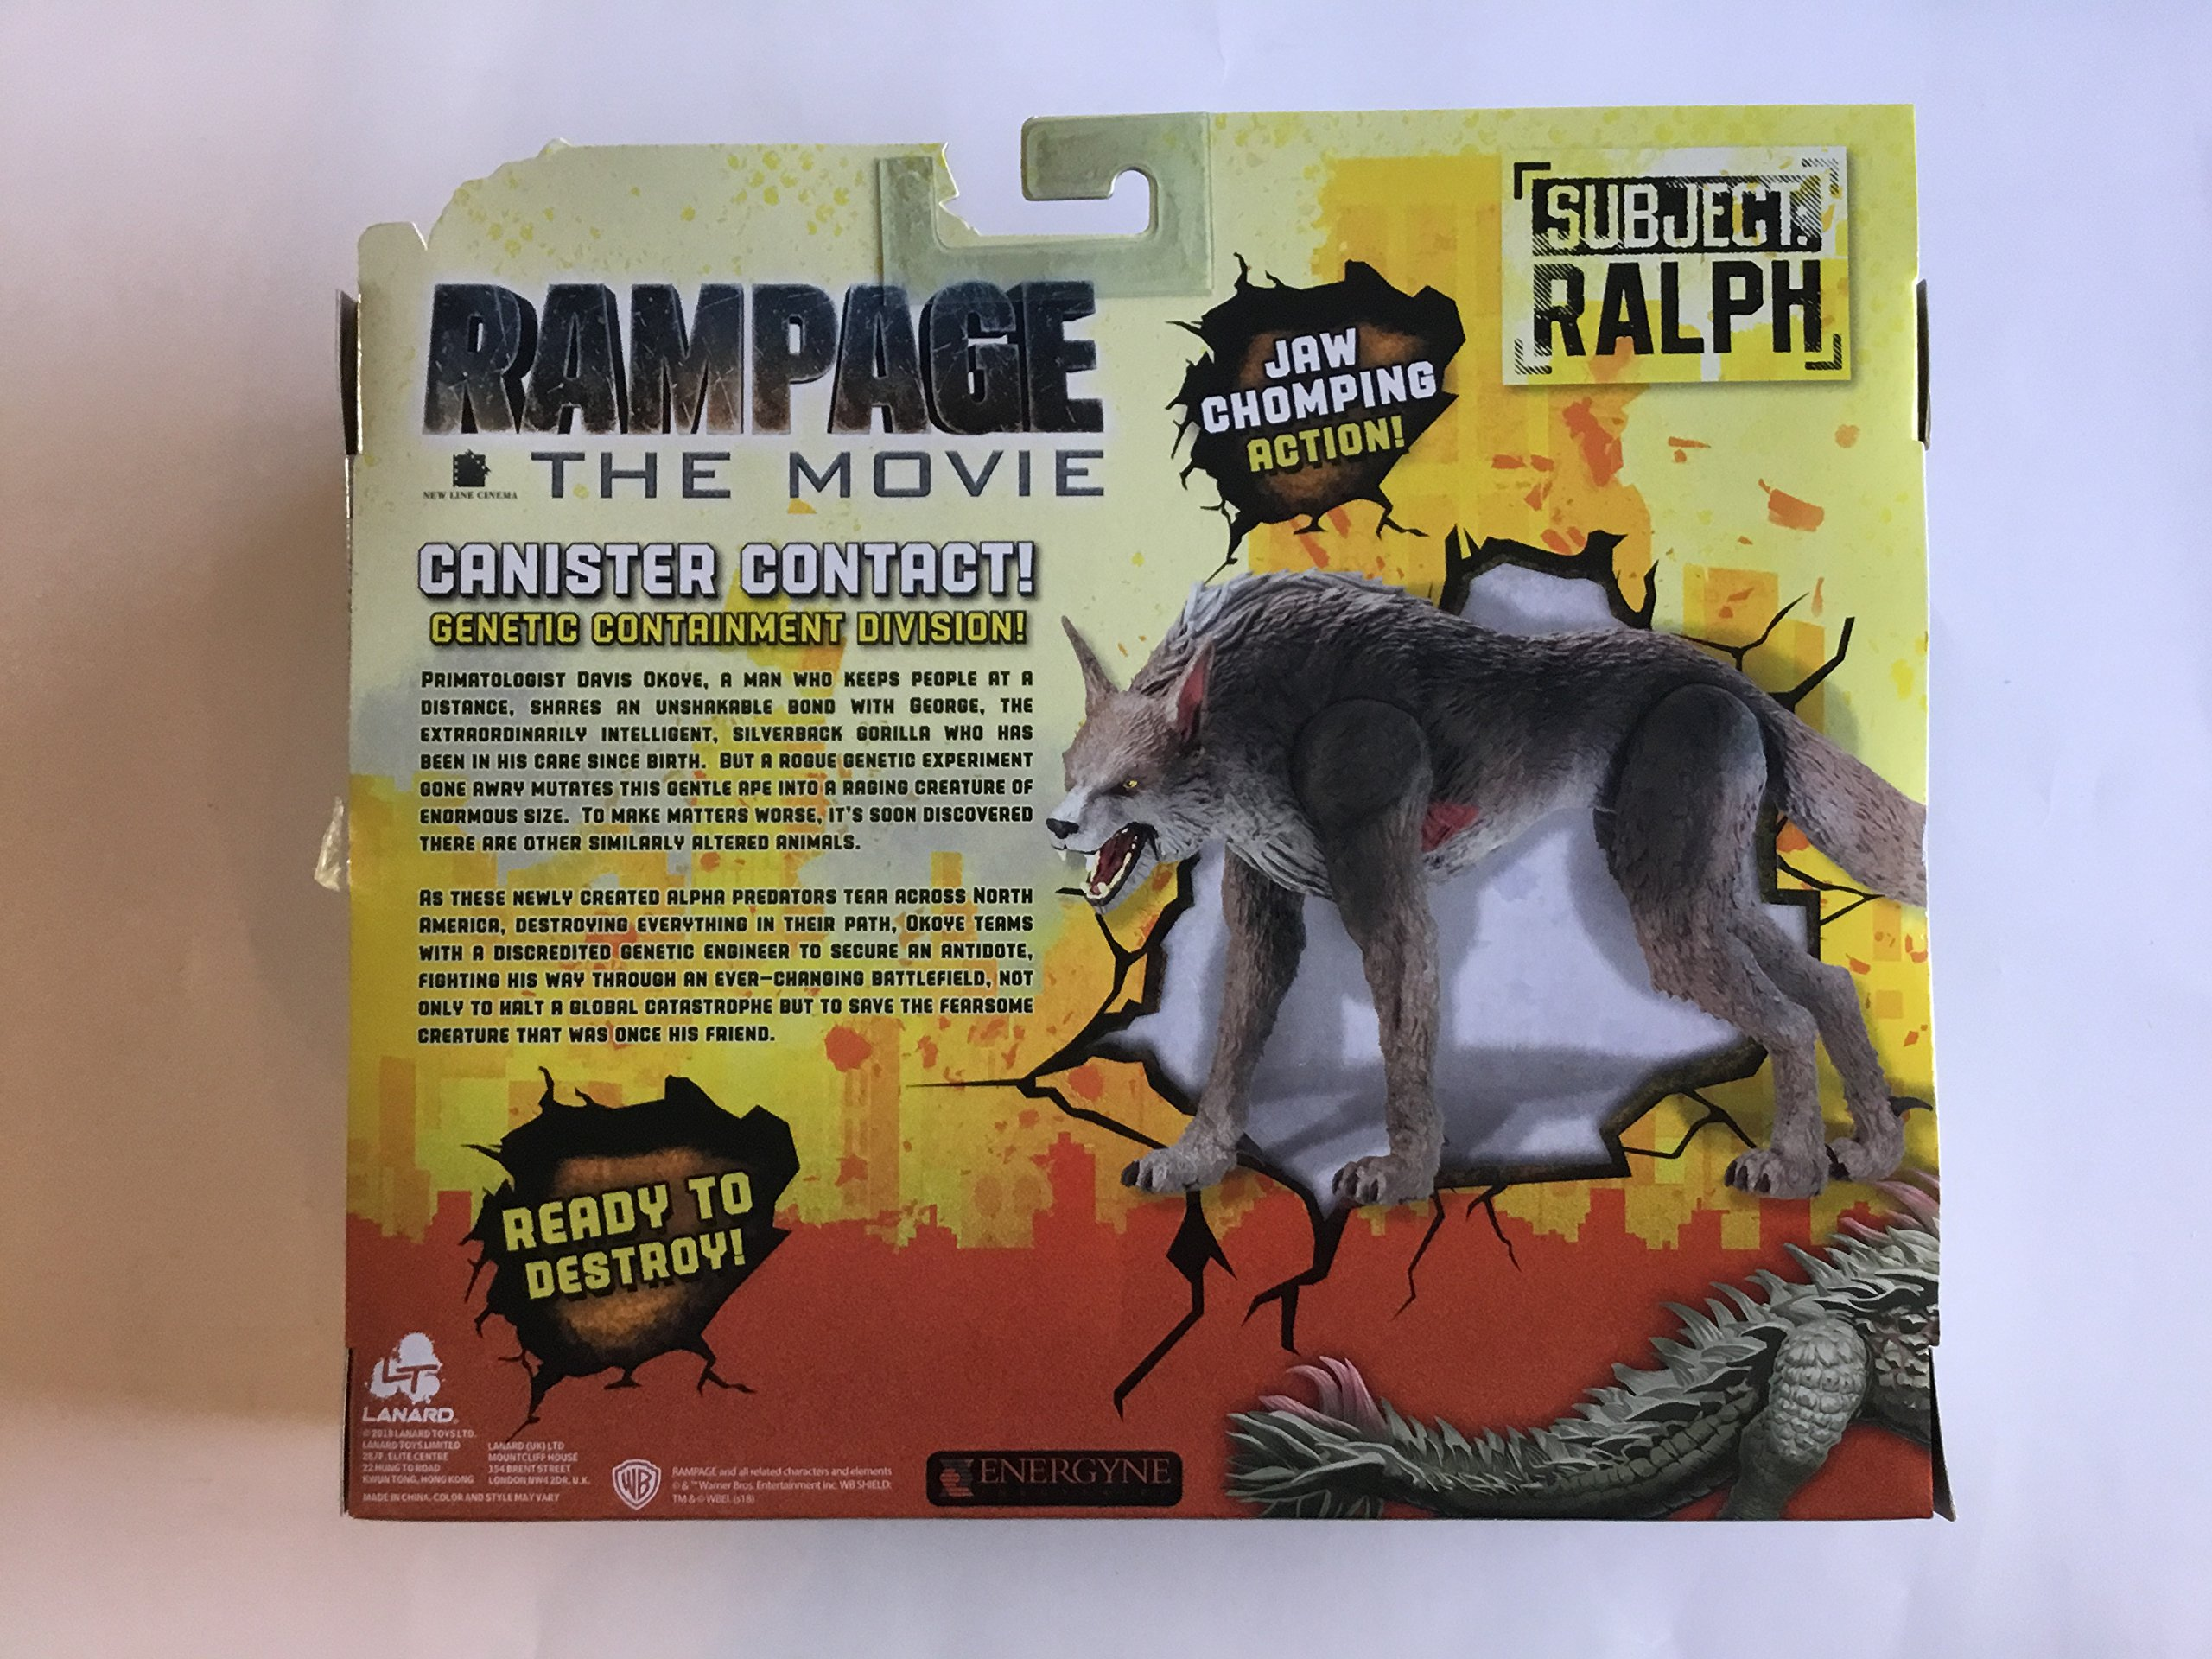 Rampage The Movie Subject George Playset Buy Online In Mauritius Lanard Toys Products In Mauritius See Prices Reviews And Free Delivery Over 2 500 Desertcart